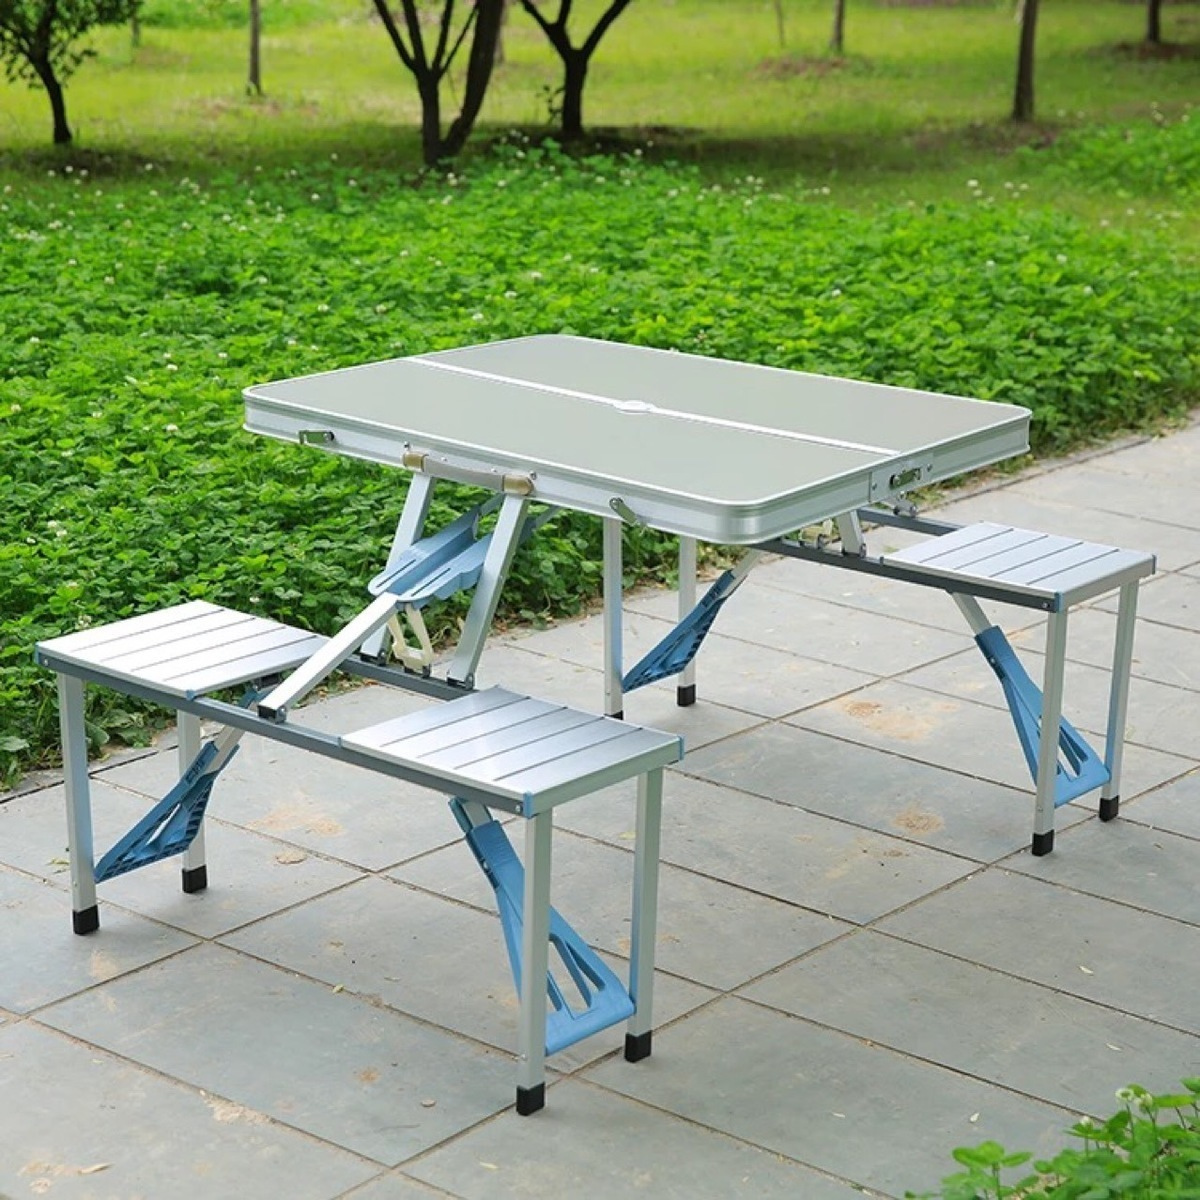 Outdoors Leisure Time Conjoined Tables And Chairs Portable Aluminium Alloy Fold Table Chair Stall Camp Barbecue Table king camp комплект 3850 table chair set серый